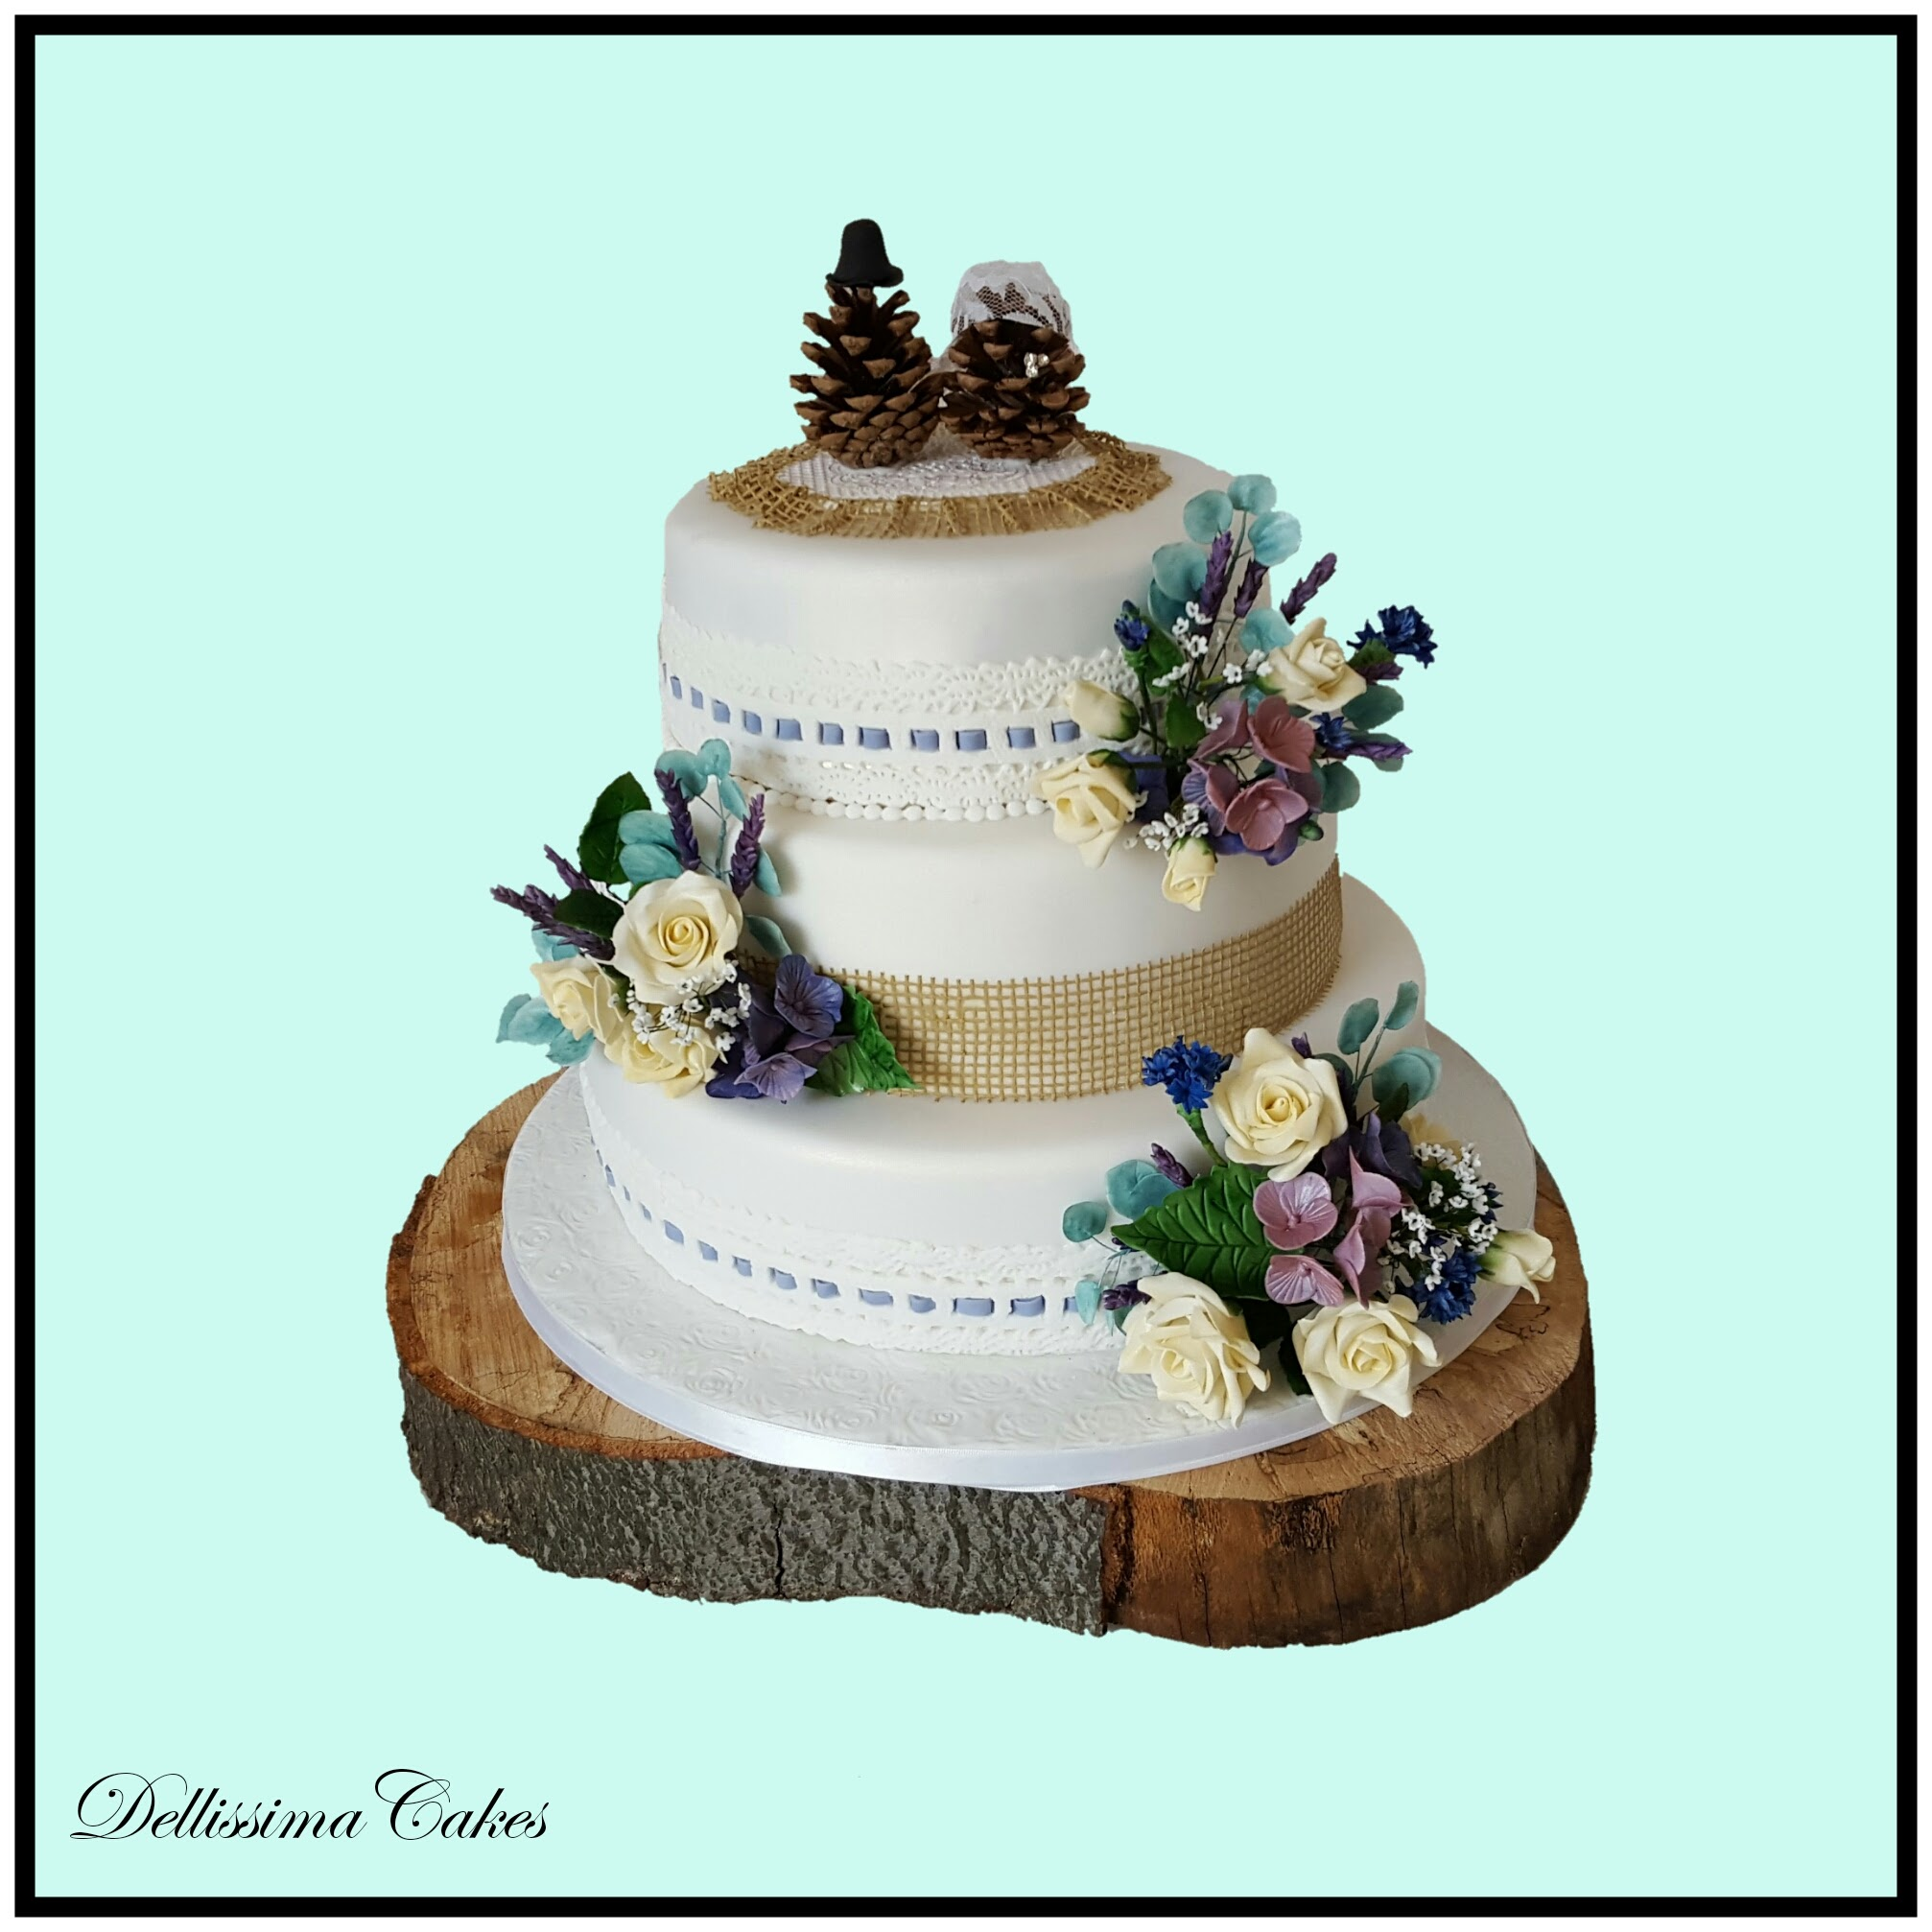 Pinecone Wedding Cake.jpg